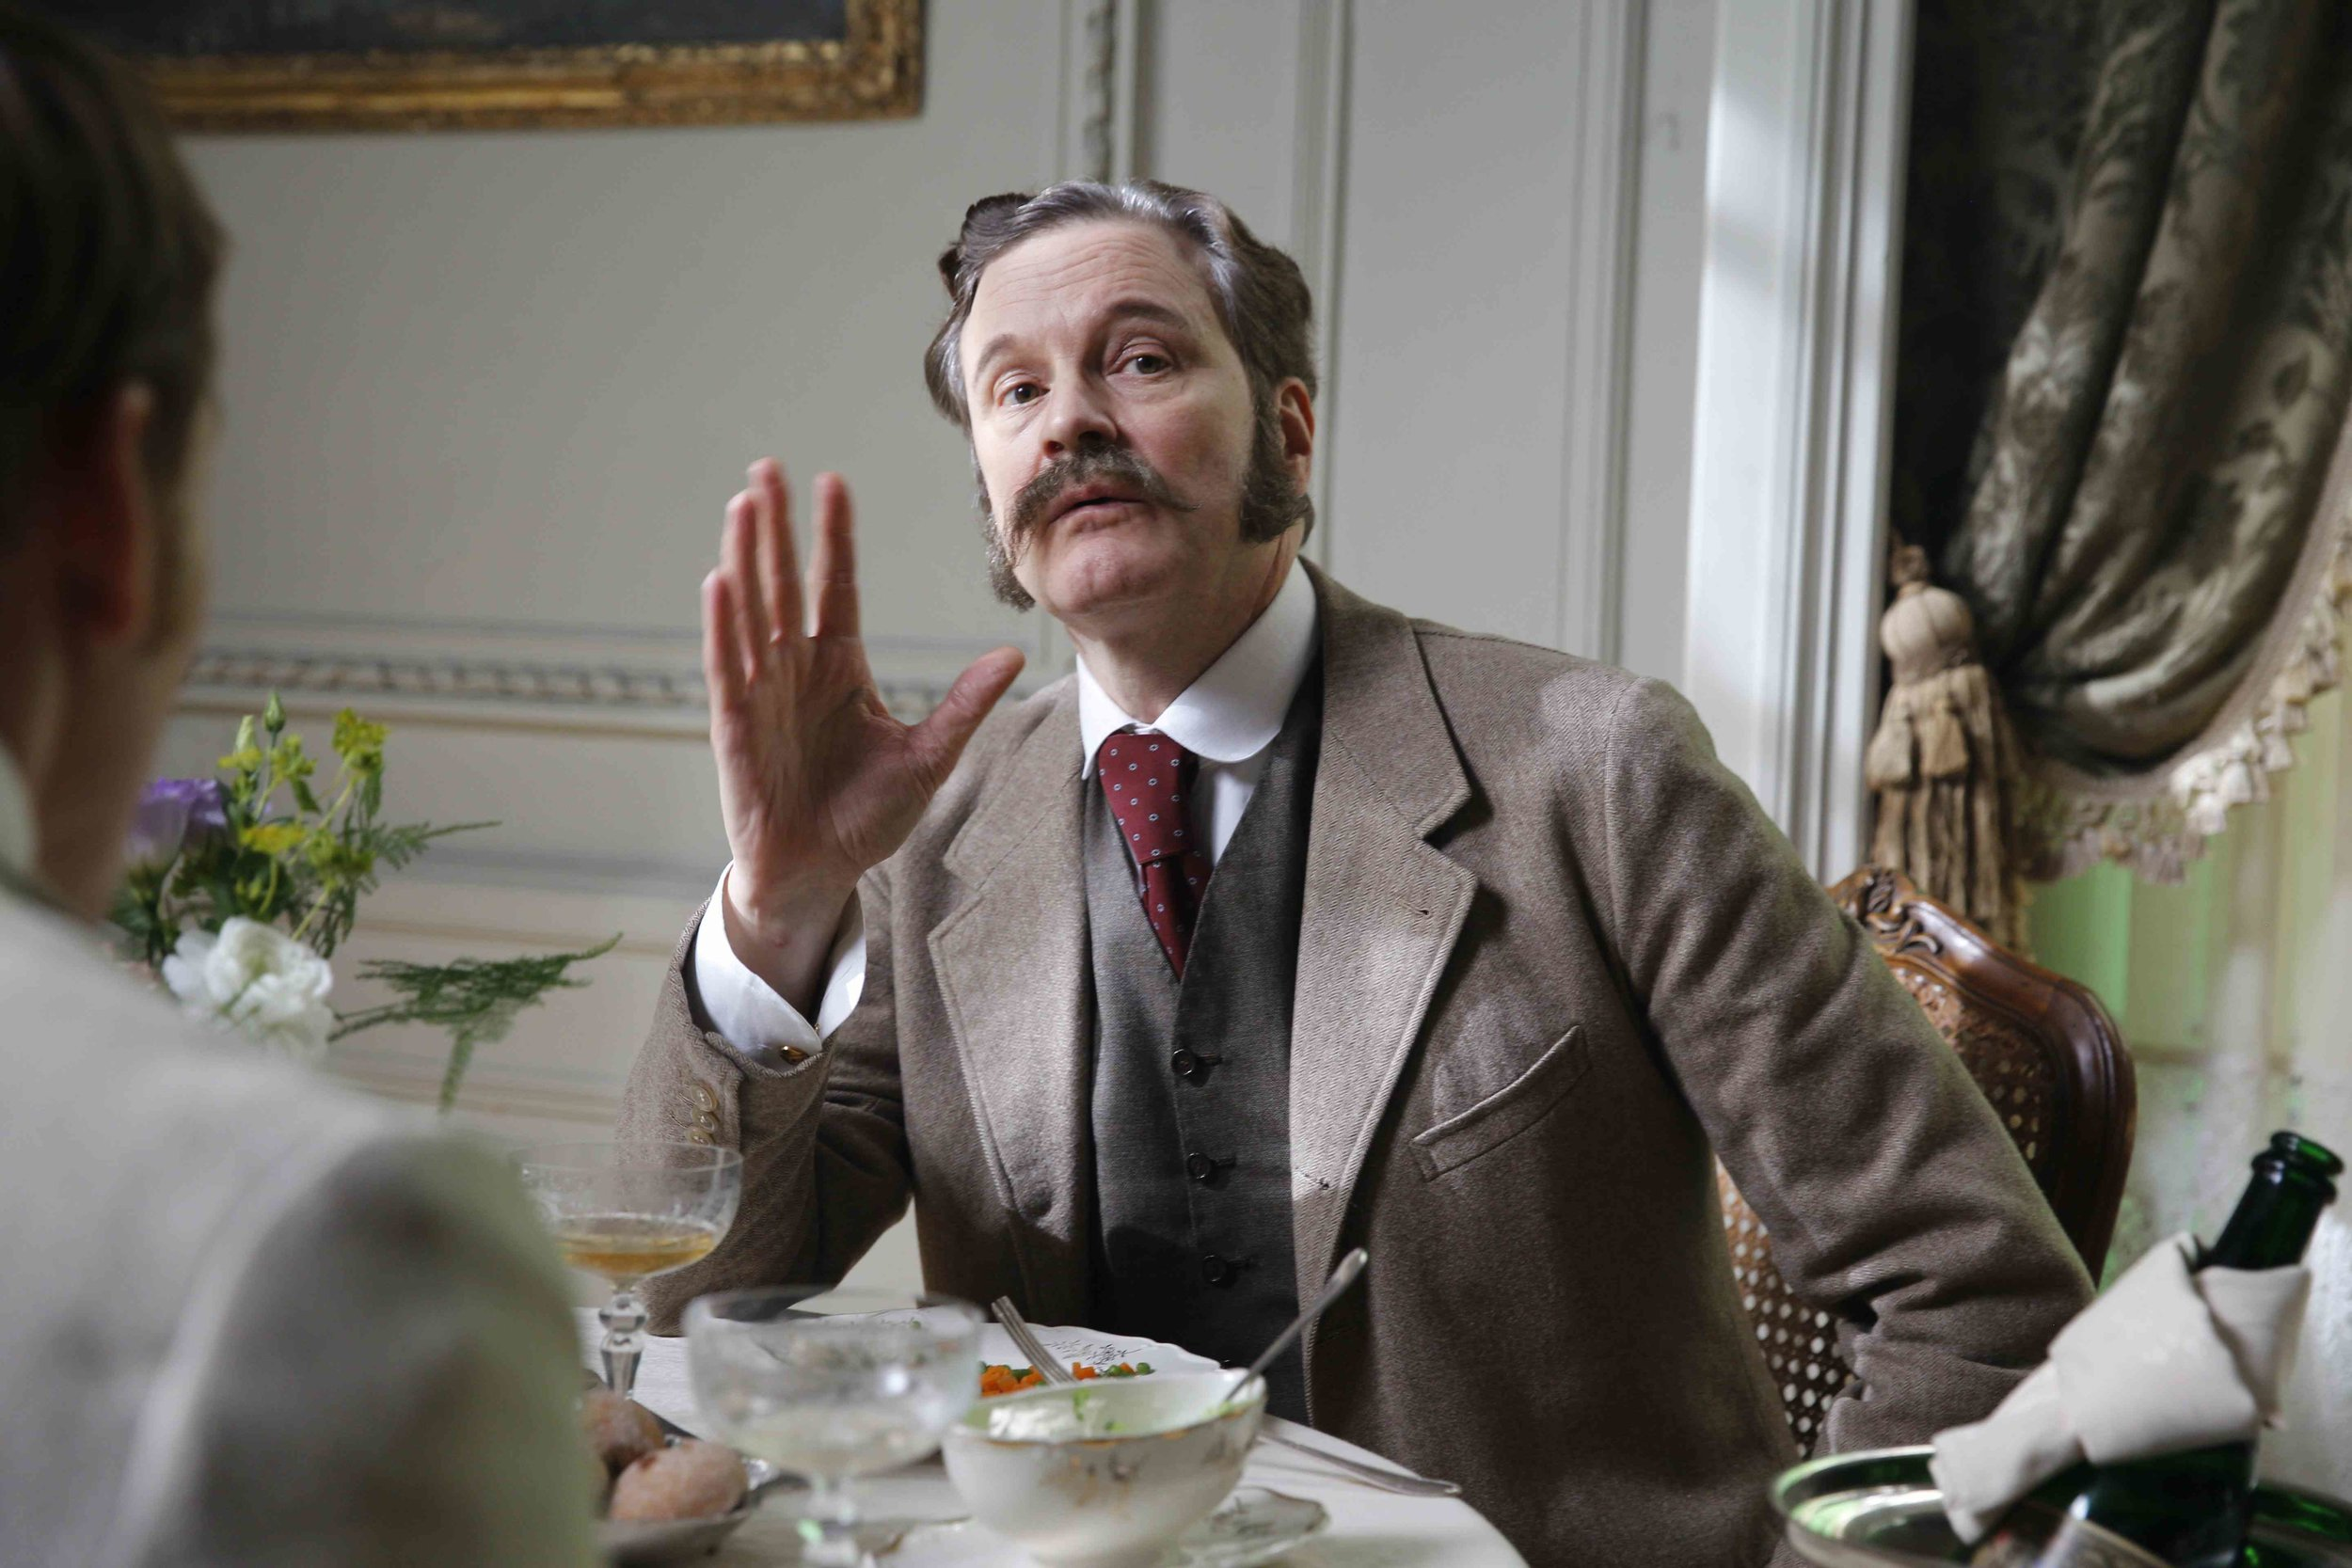 Colin Firth as Reggie Turner Photo by Wilhelm Moser, Courtesy of Sony Pictures Classics